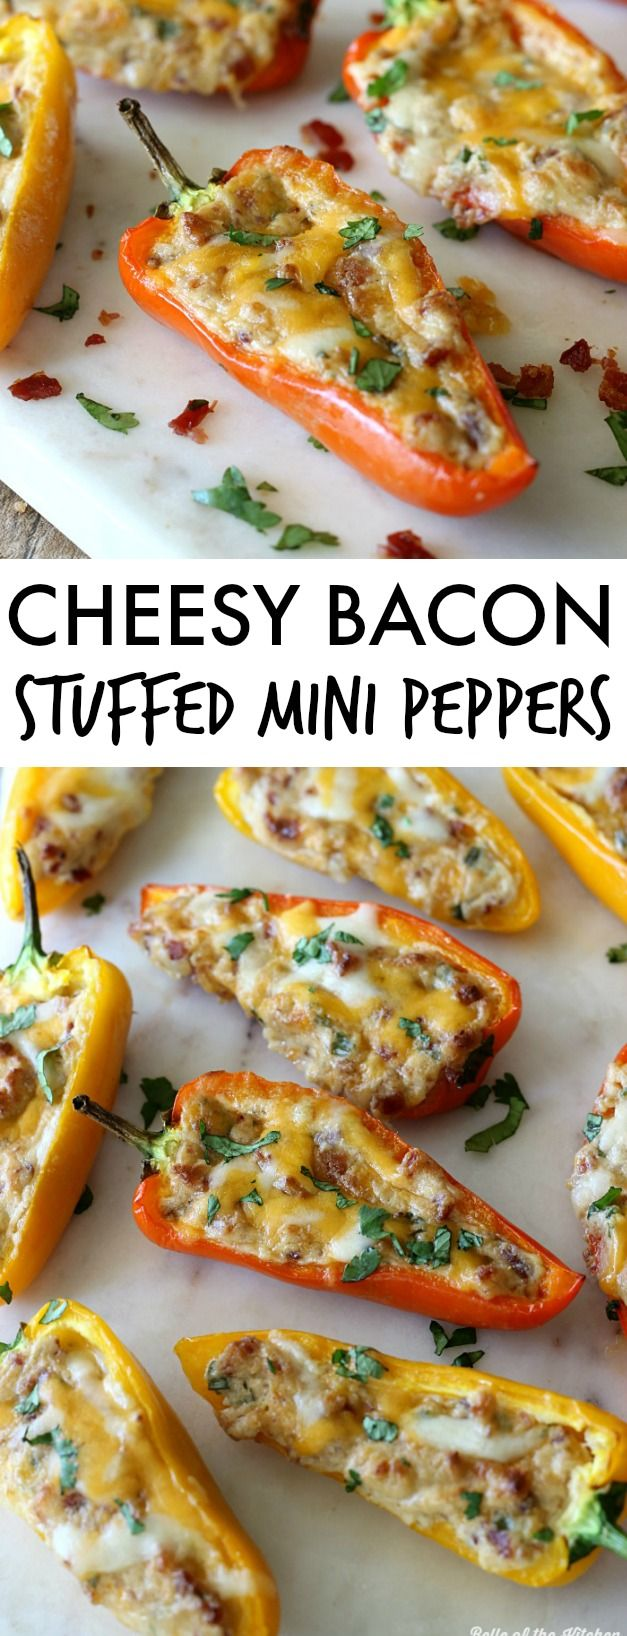 Cheesy Bacon Stuffed Mini Peppers. Make this dairy free by using df cream cheese. Yum!